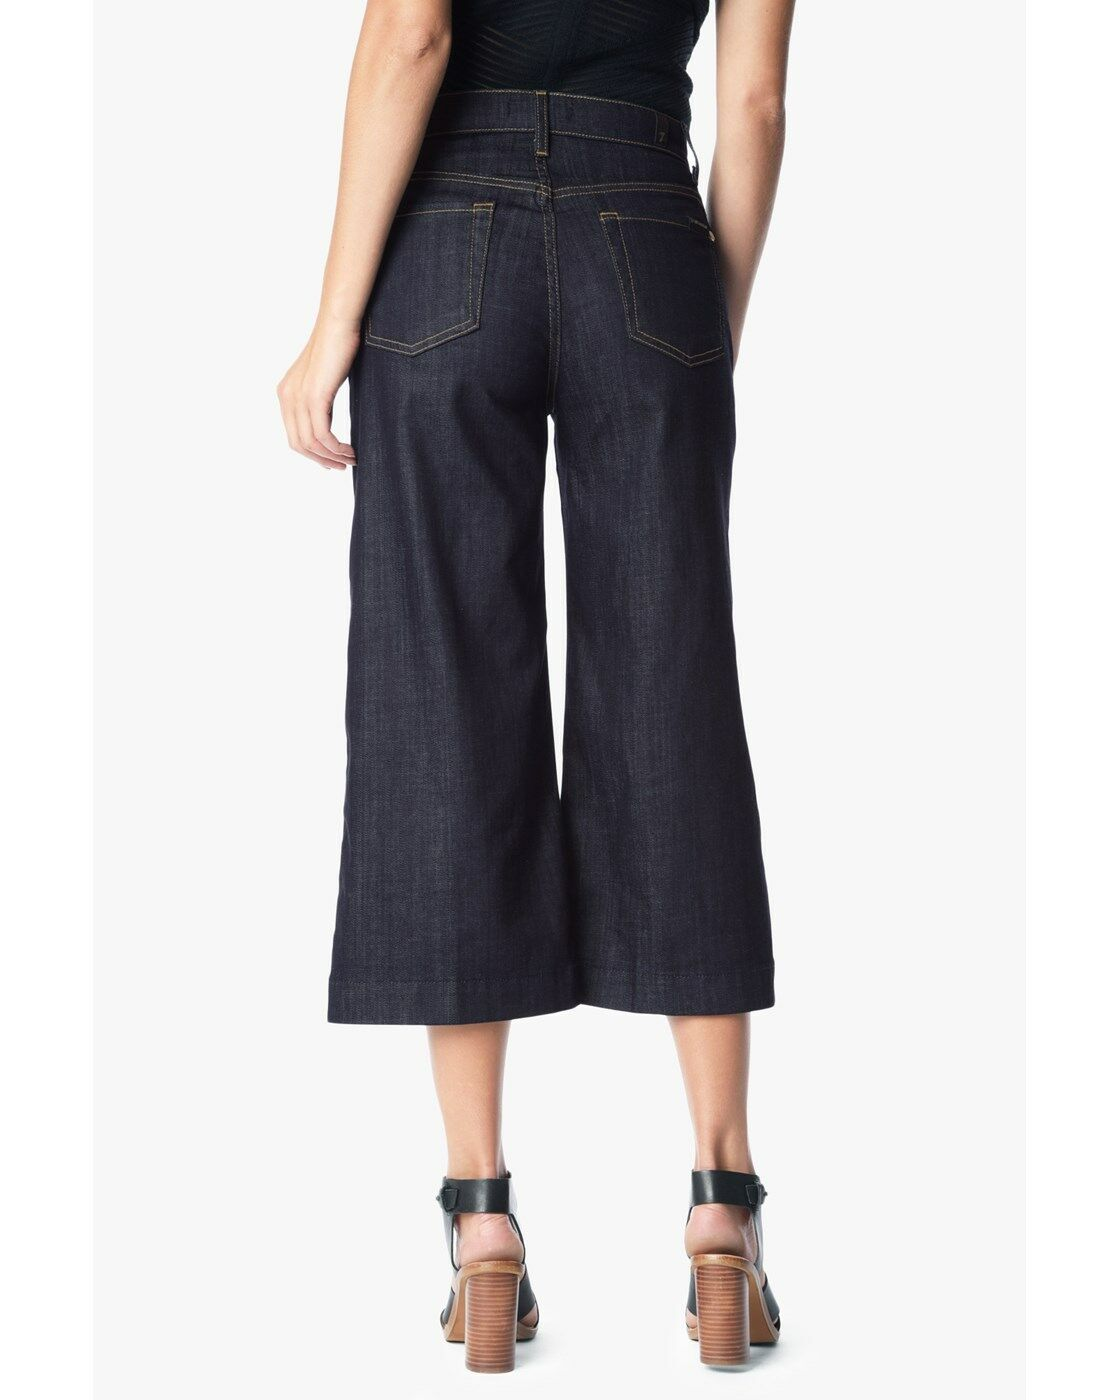 Nordstrom  Tag Fan all 7 mankind CULOTTE IN PURE RINSE WOMENS JEANS SIZE 25